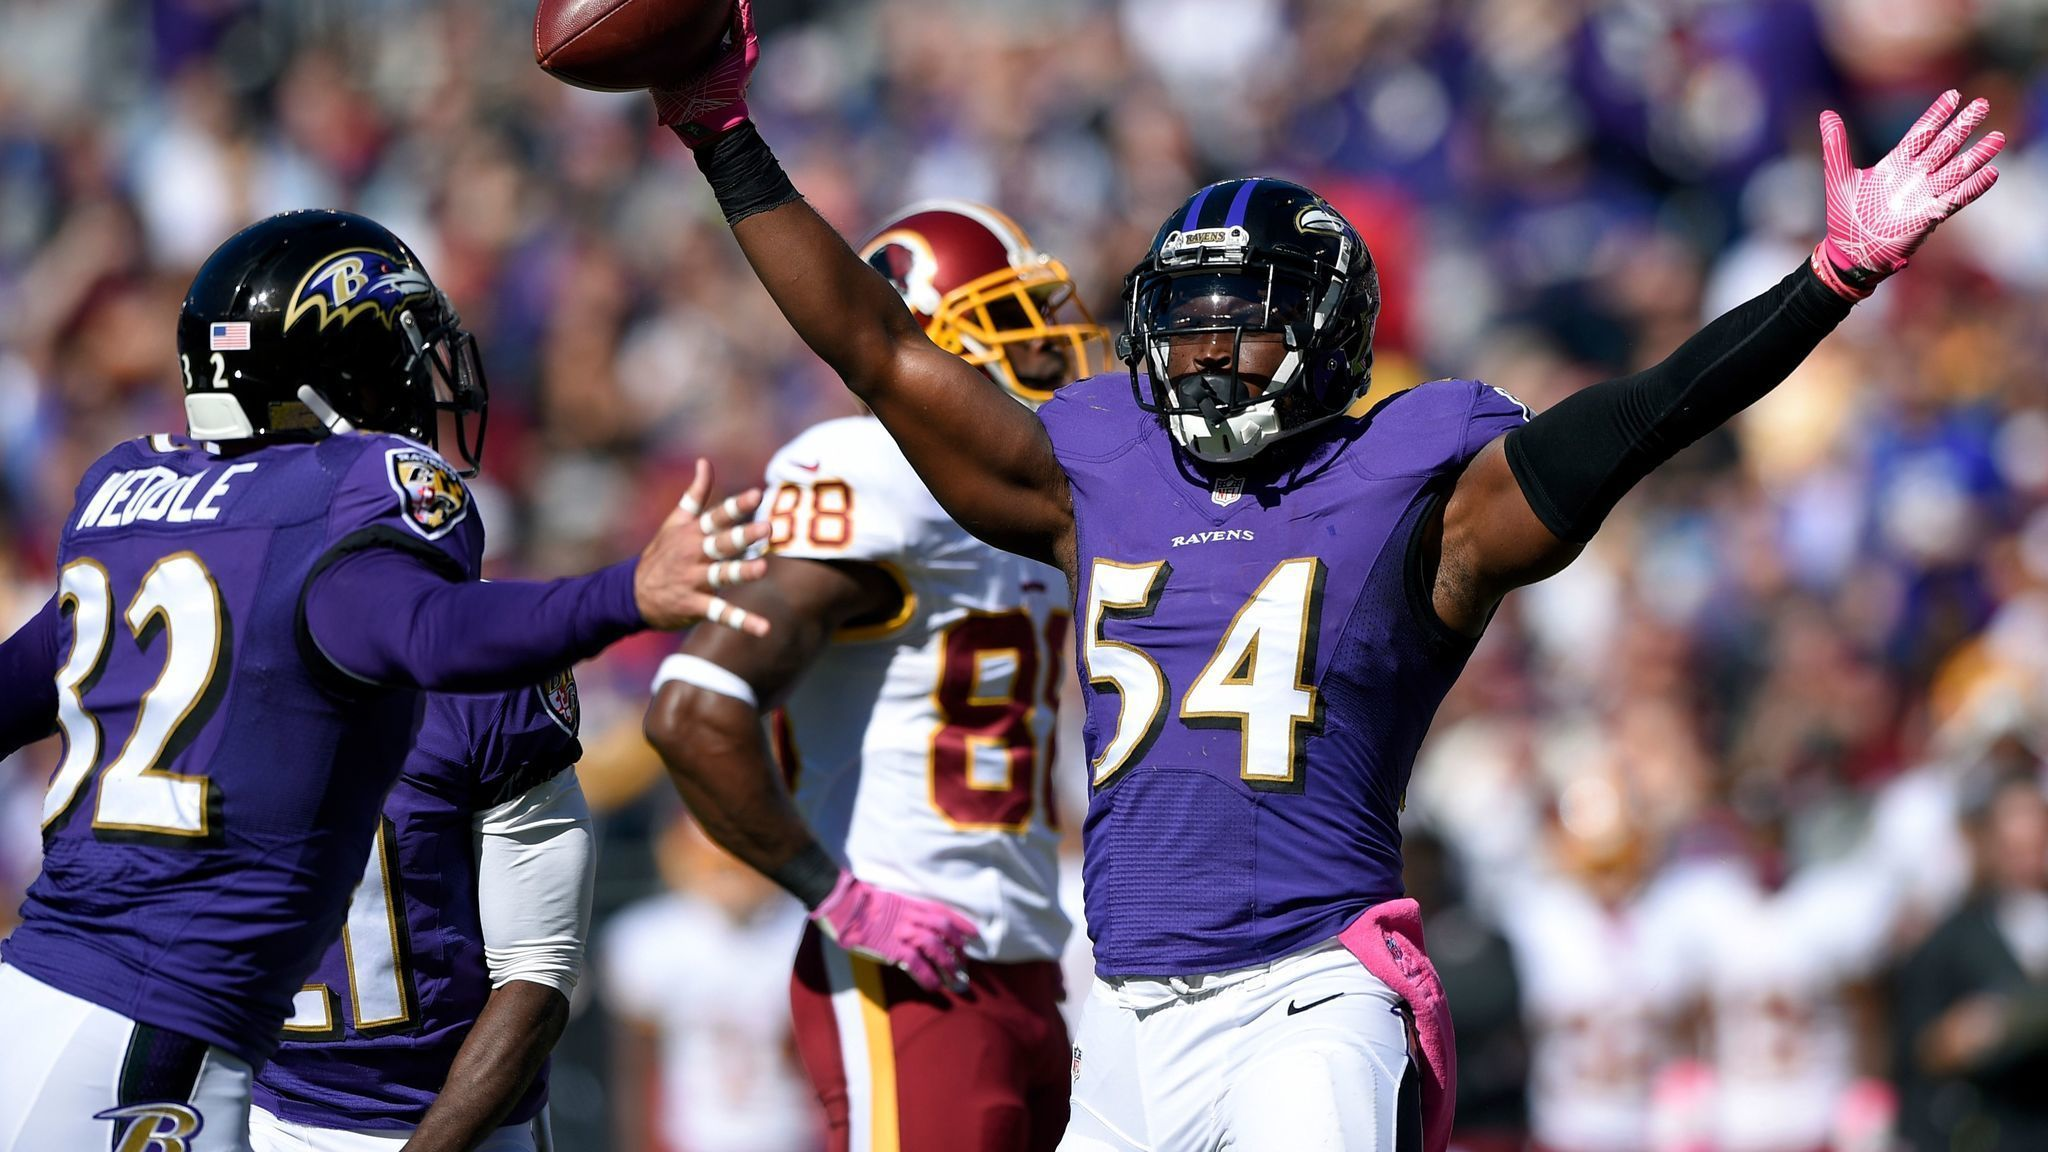 Zach orr retires due to congenital neckspine condition nfl com - Former Ravens Lb Zachary Orr 100 Percent Confident He Will Be Back In Nfl This Season Baltimore Sun